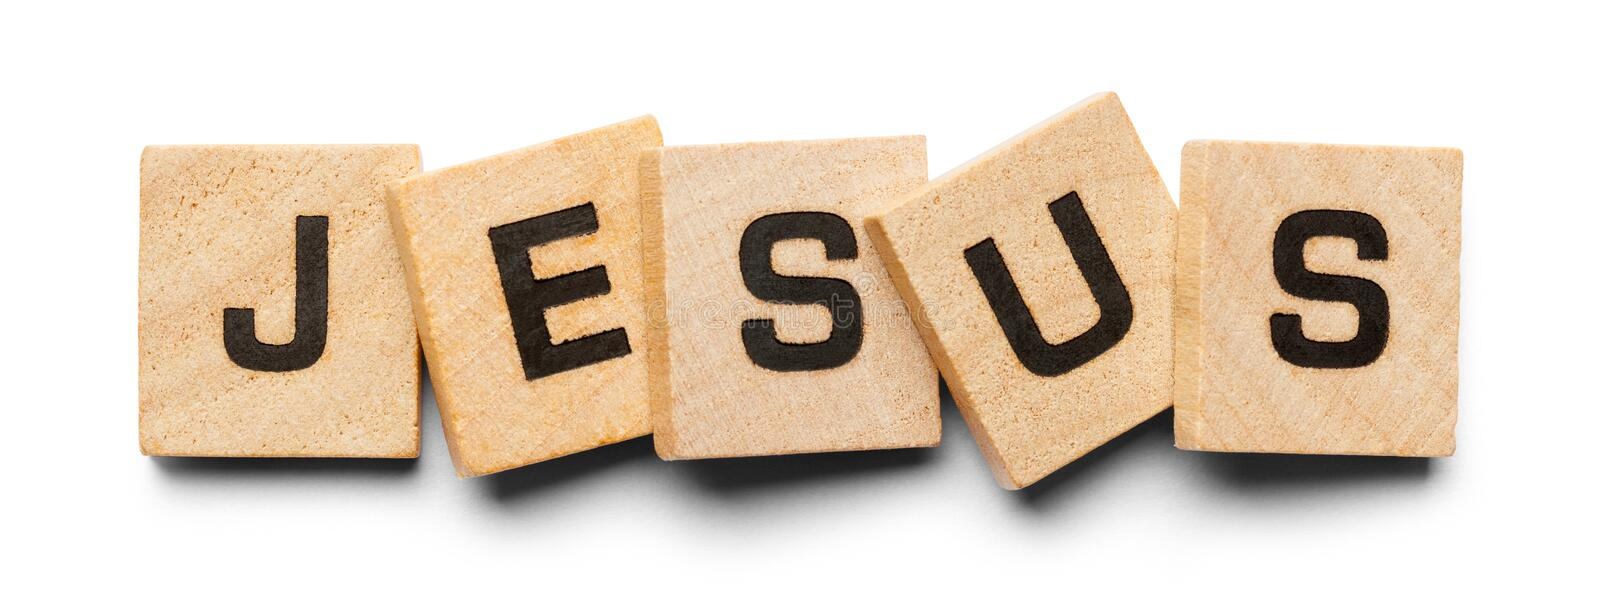 Jesus Wood Tiles. Jesus Spelled with Wood Tiles Isolated on a White Background stock photo